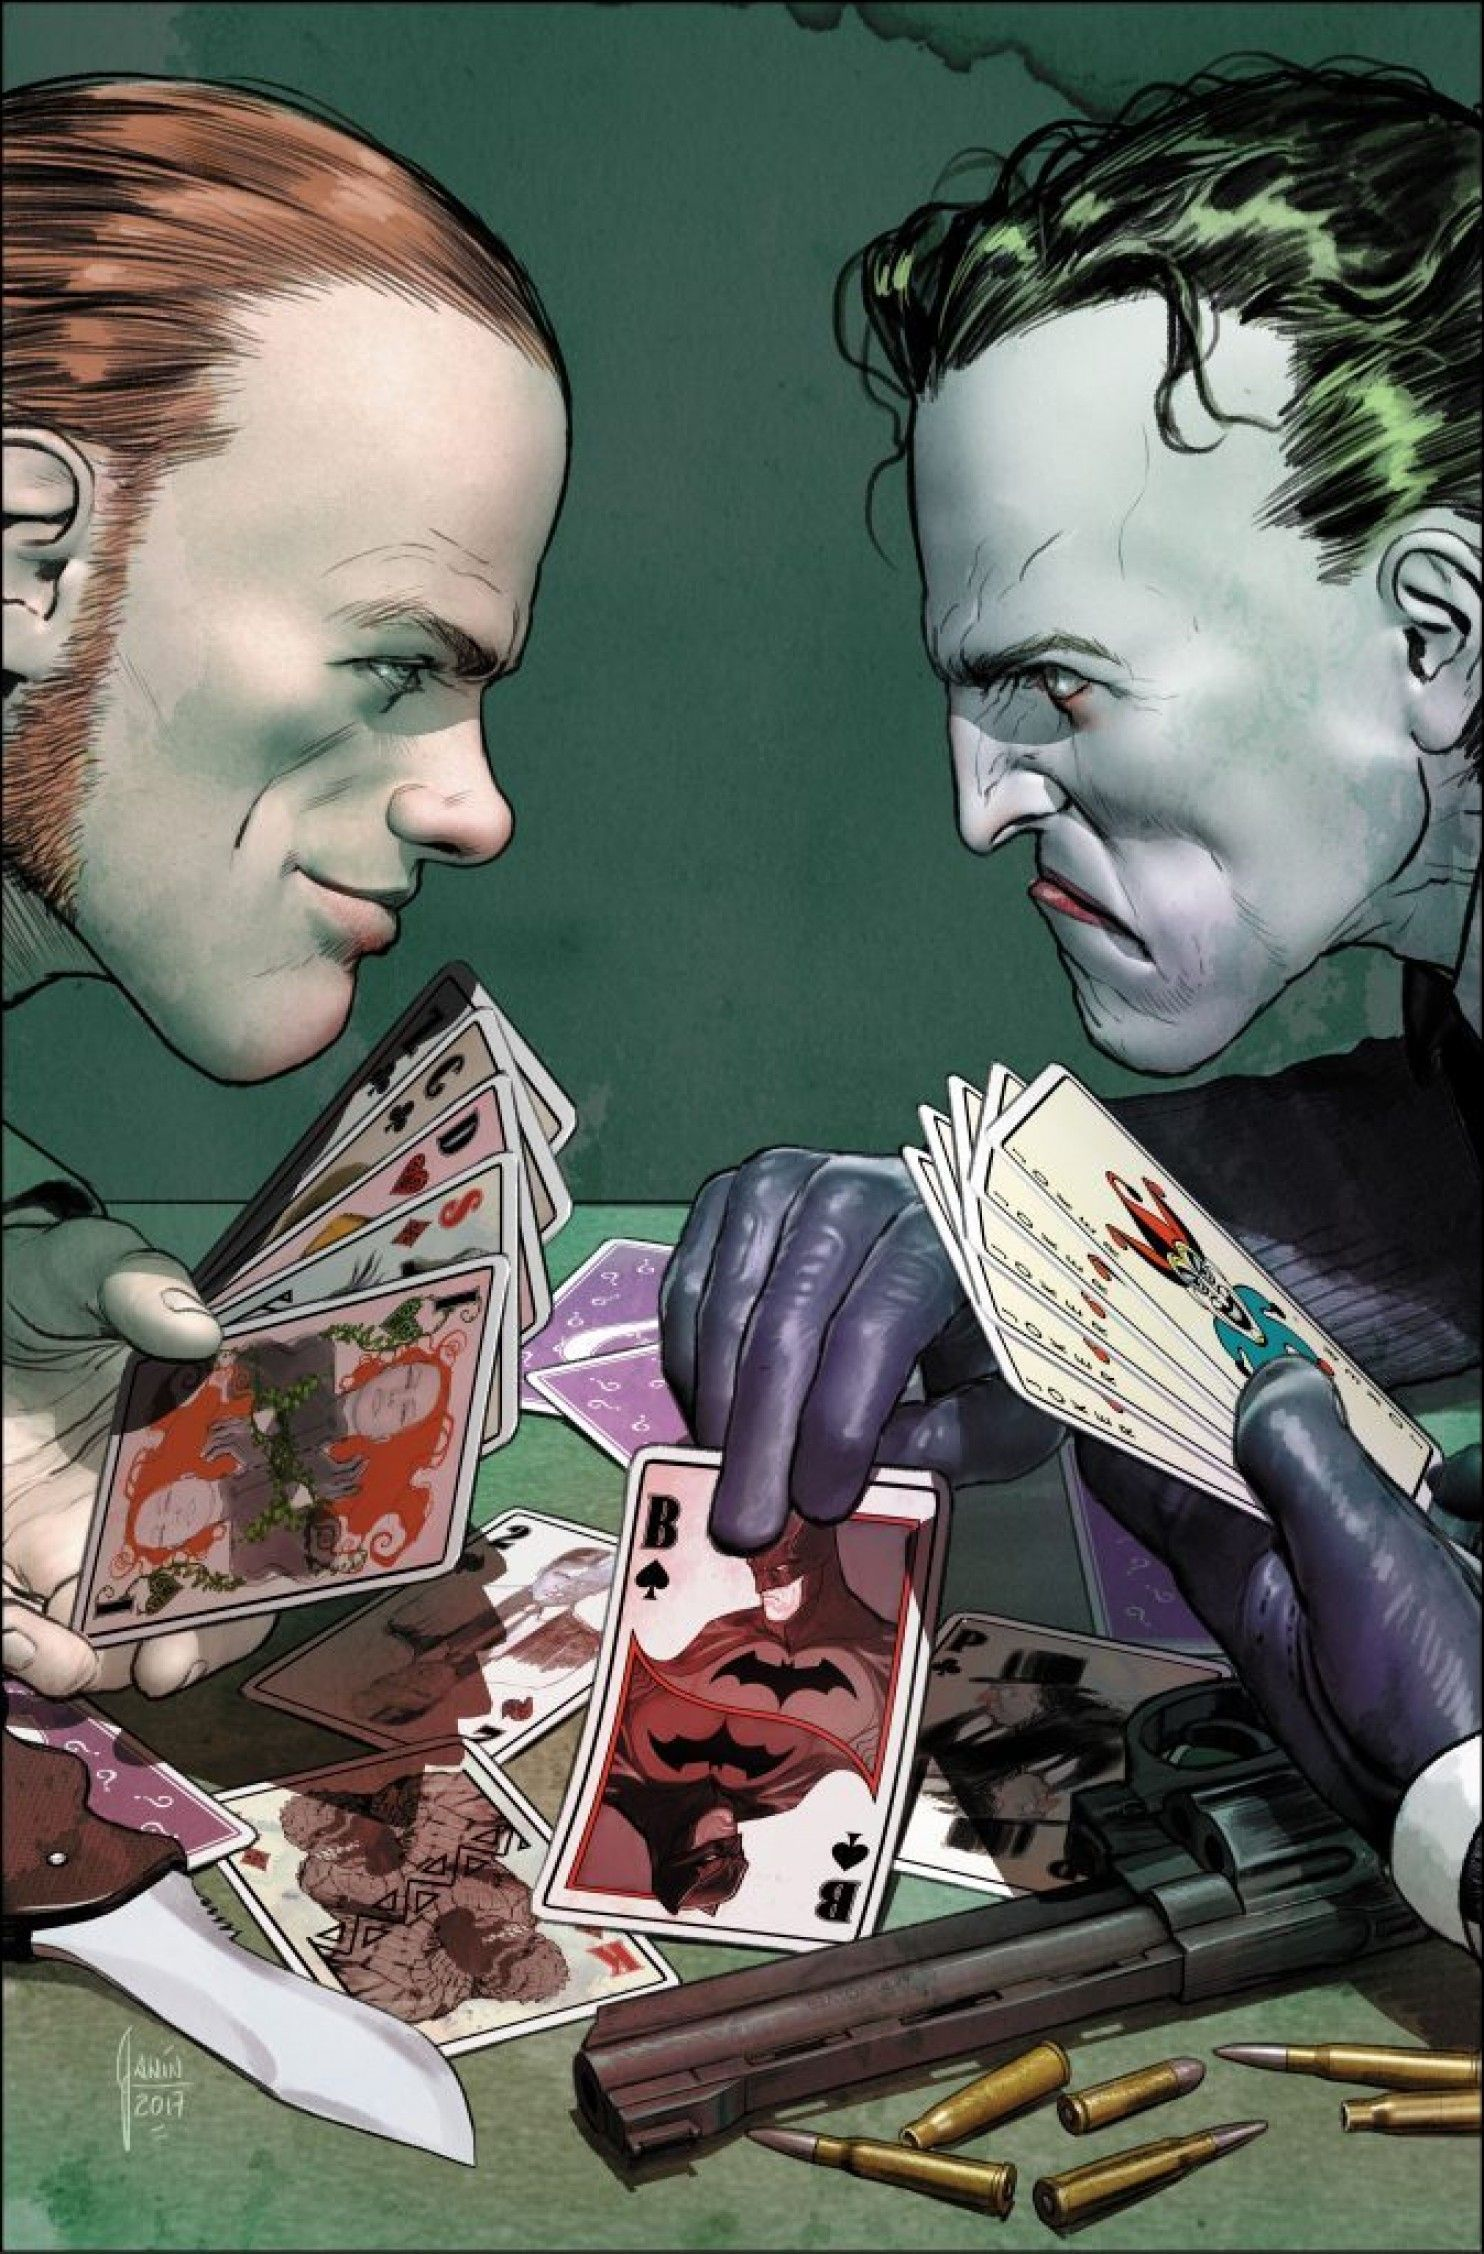 The Joker and the Riddler are going to war over who will